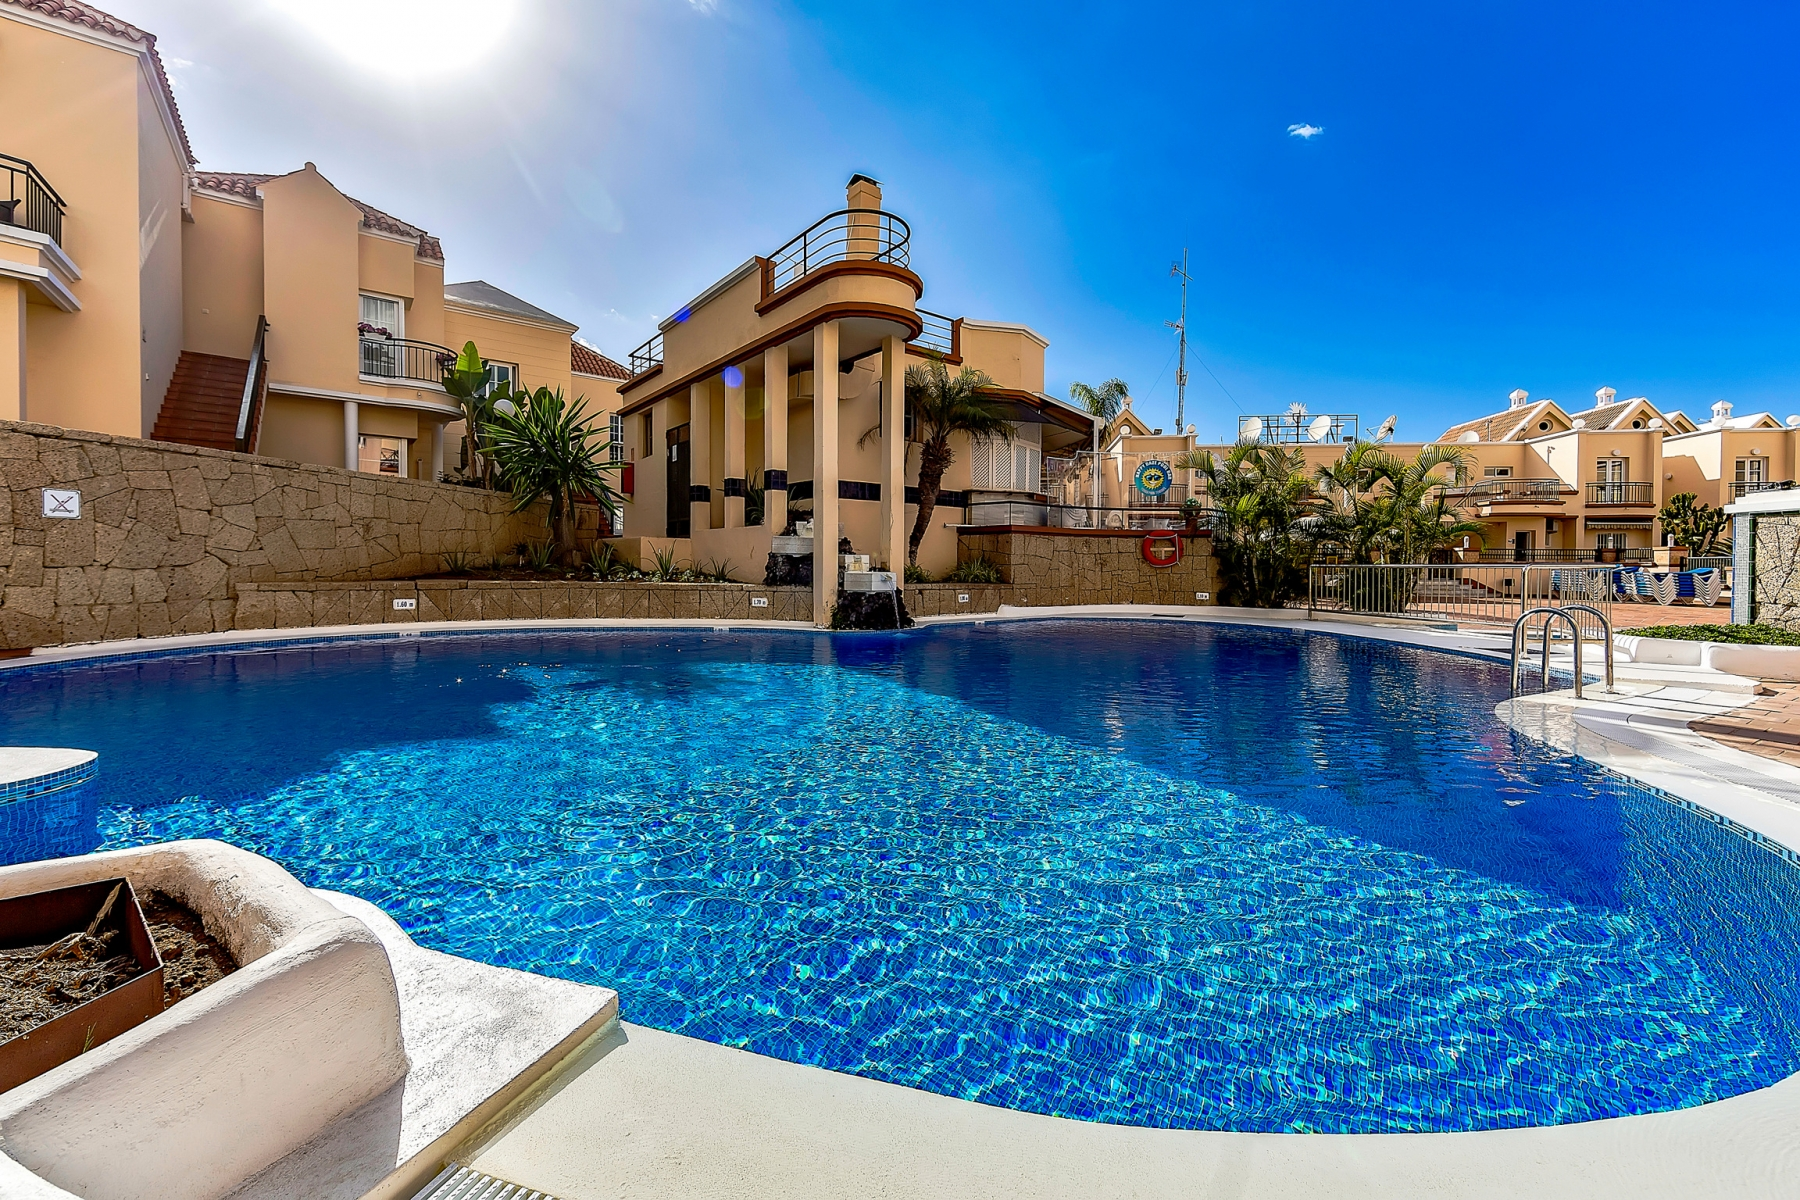 Properties for Sale in Tenerife, Canary Islands, Spain | SylkWayStar Real Estate. 1 bedroom apartment Yucca Park. Image-22547